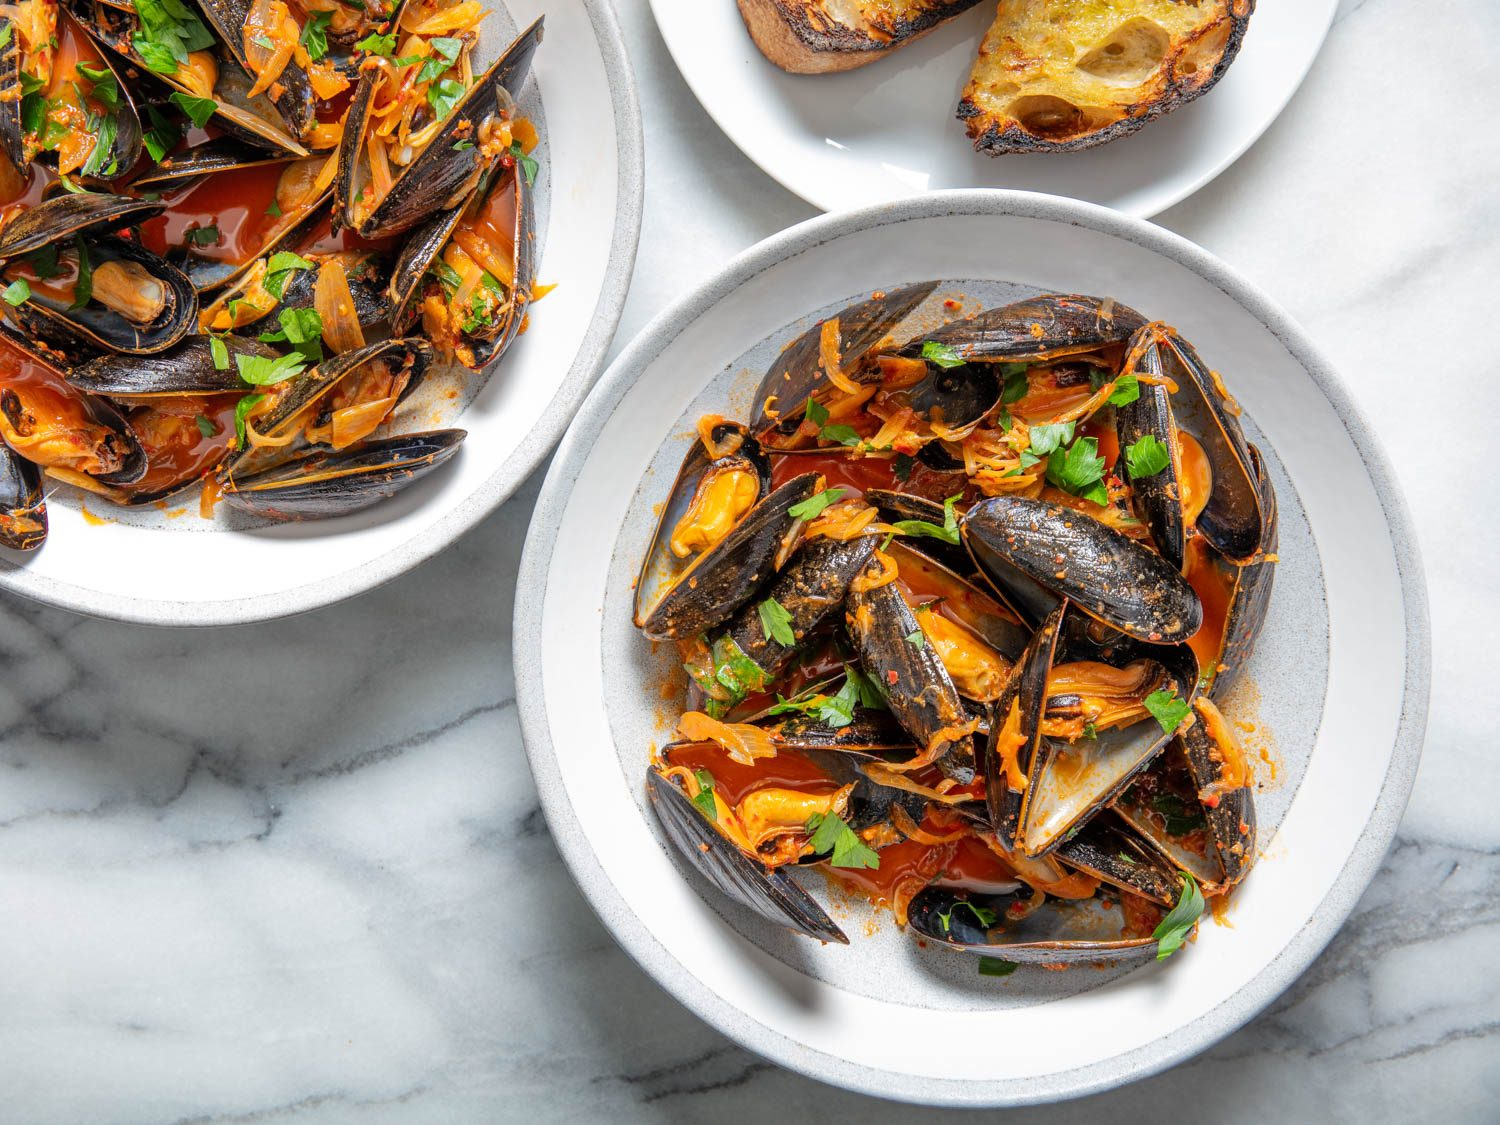 Spicy Steamed Mussels With 'Nduja